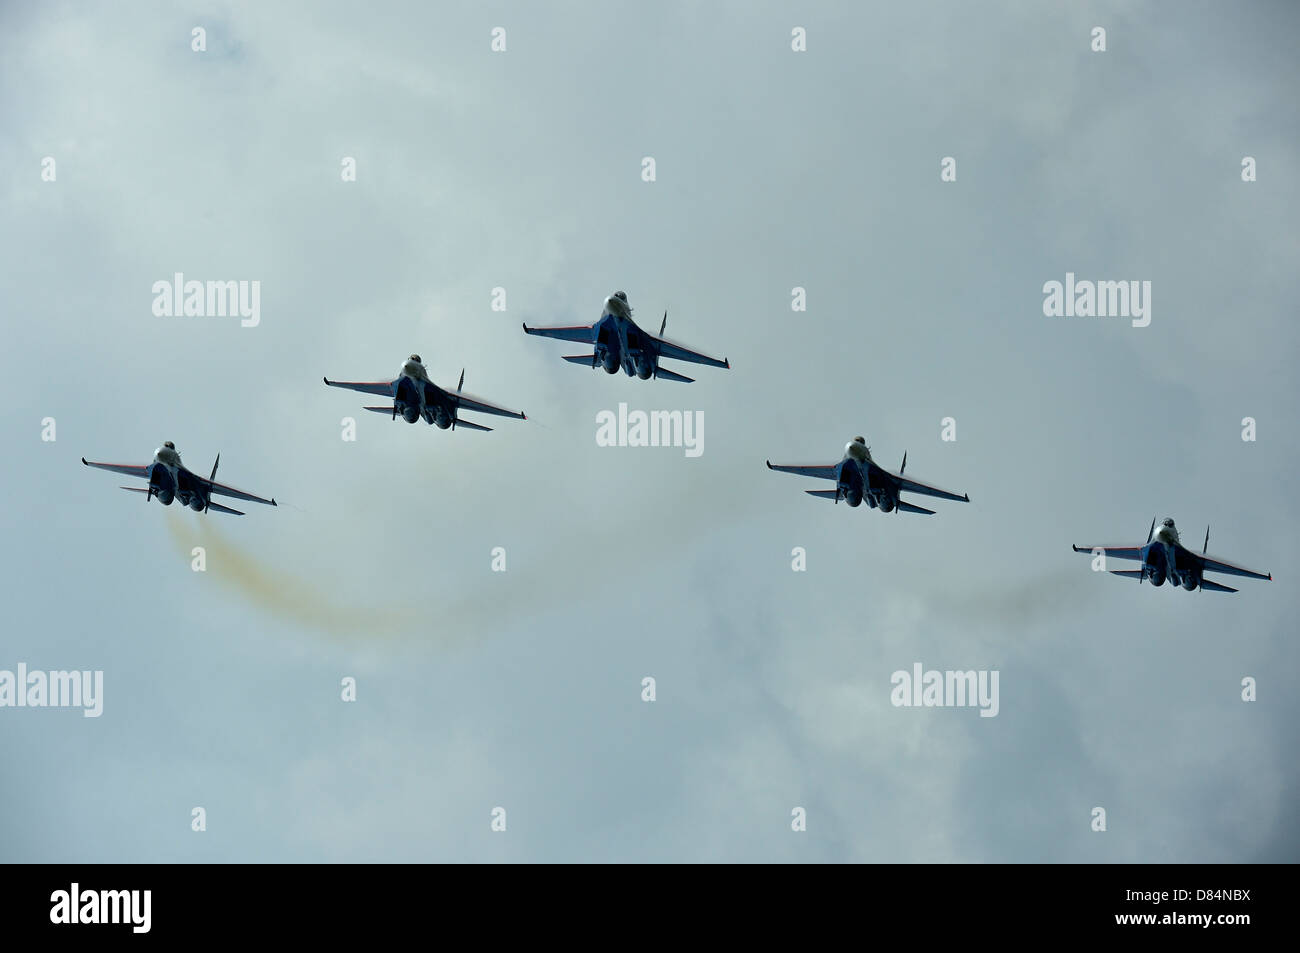 March 27, 2013 - Sukhoi Su-27 Flanker aircraft of the Russian Knights aerobatic team fly over Langkawi, Malaysia. - Stock Image